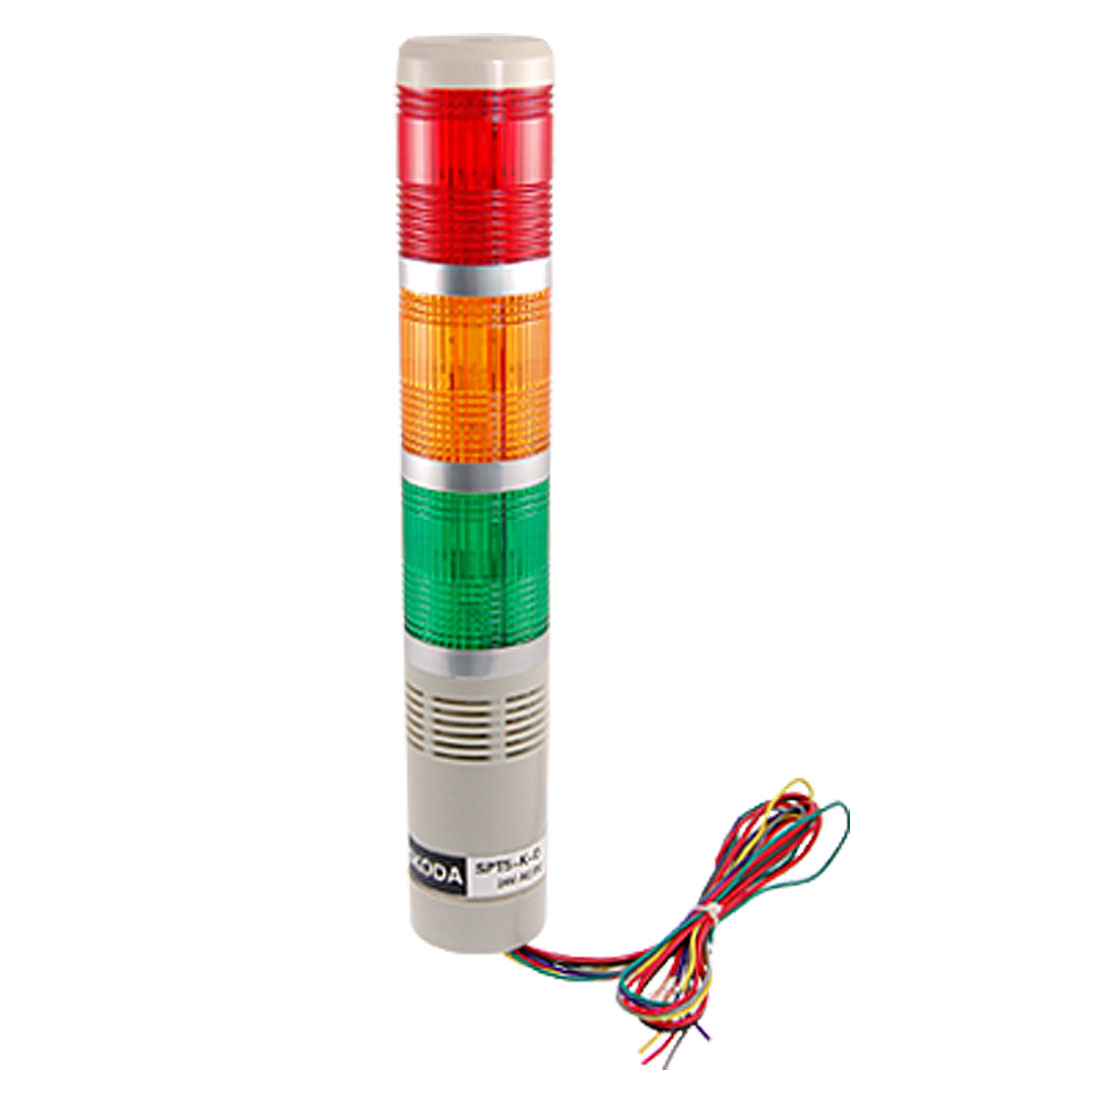 Industrial Signal Tower Light Red Green Yellow LED Alarm Lamp 24V W Install Part